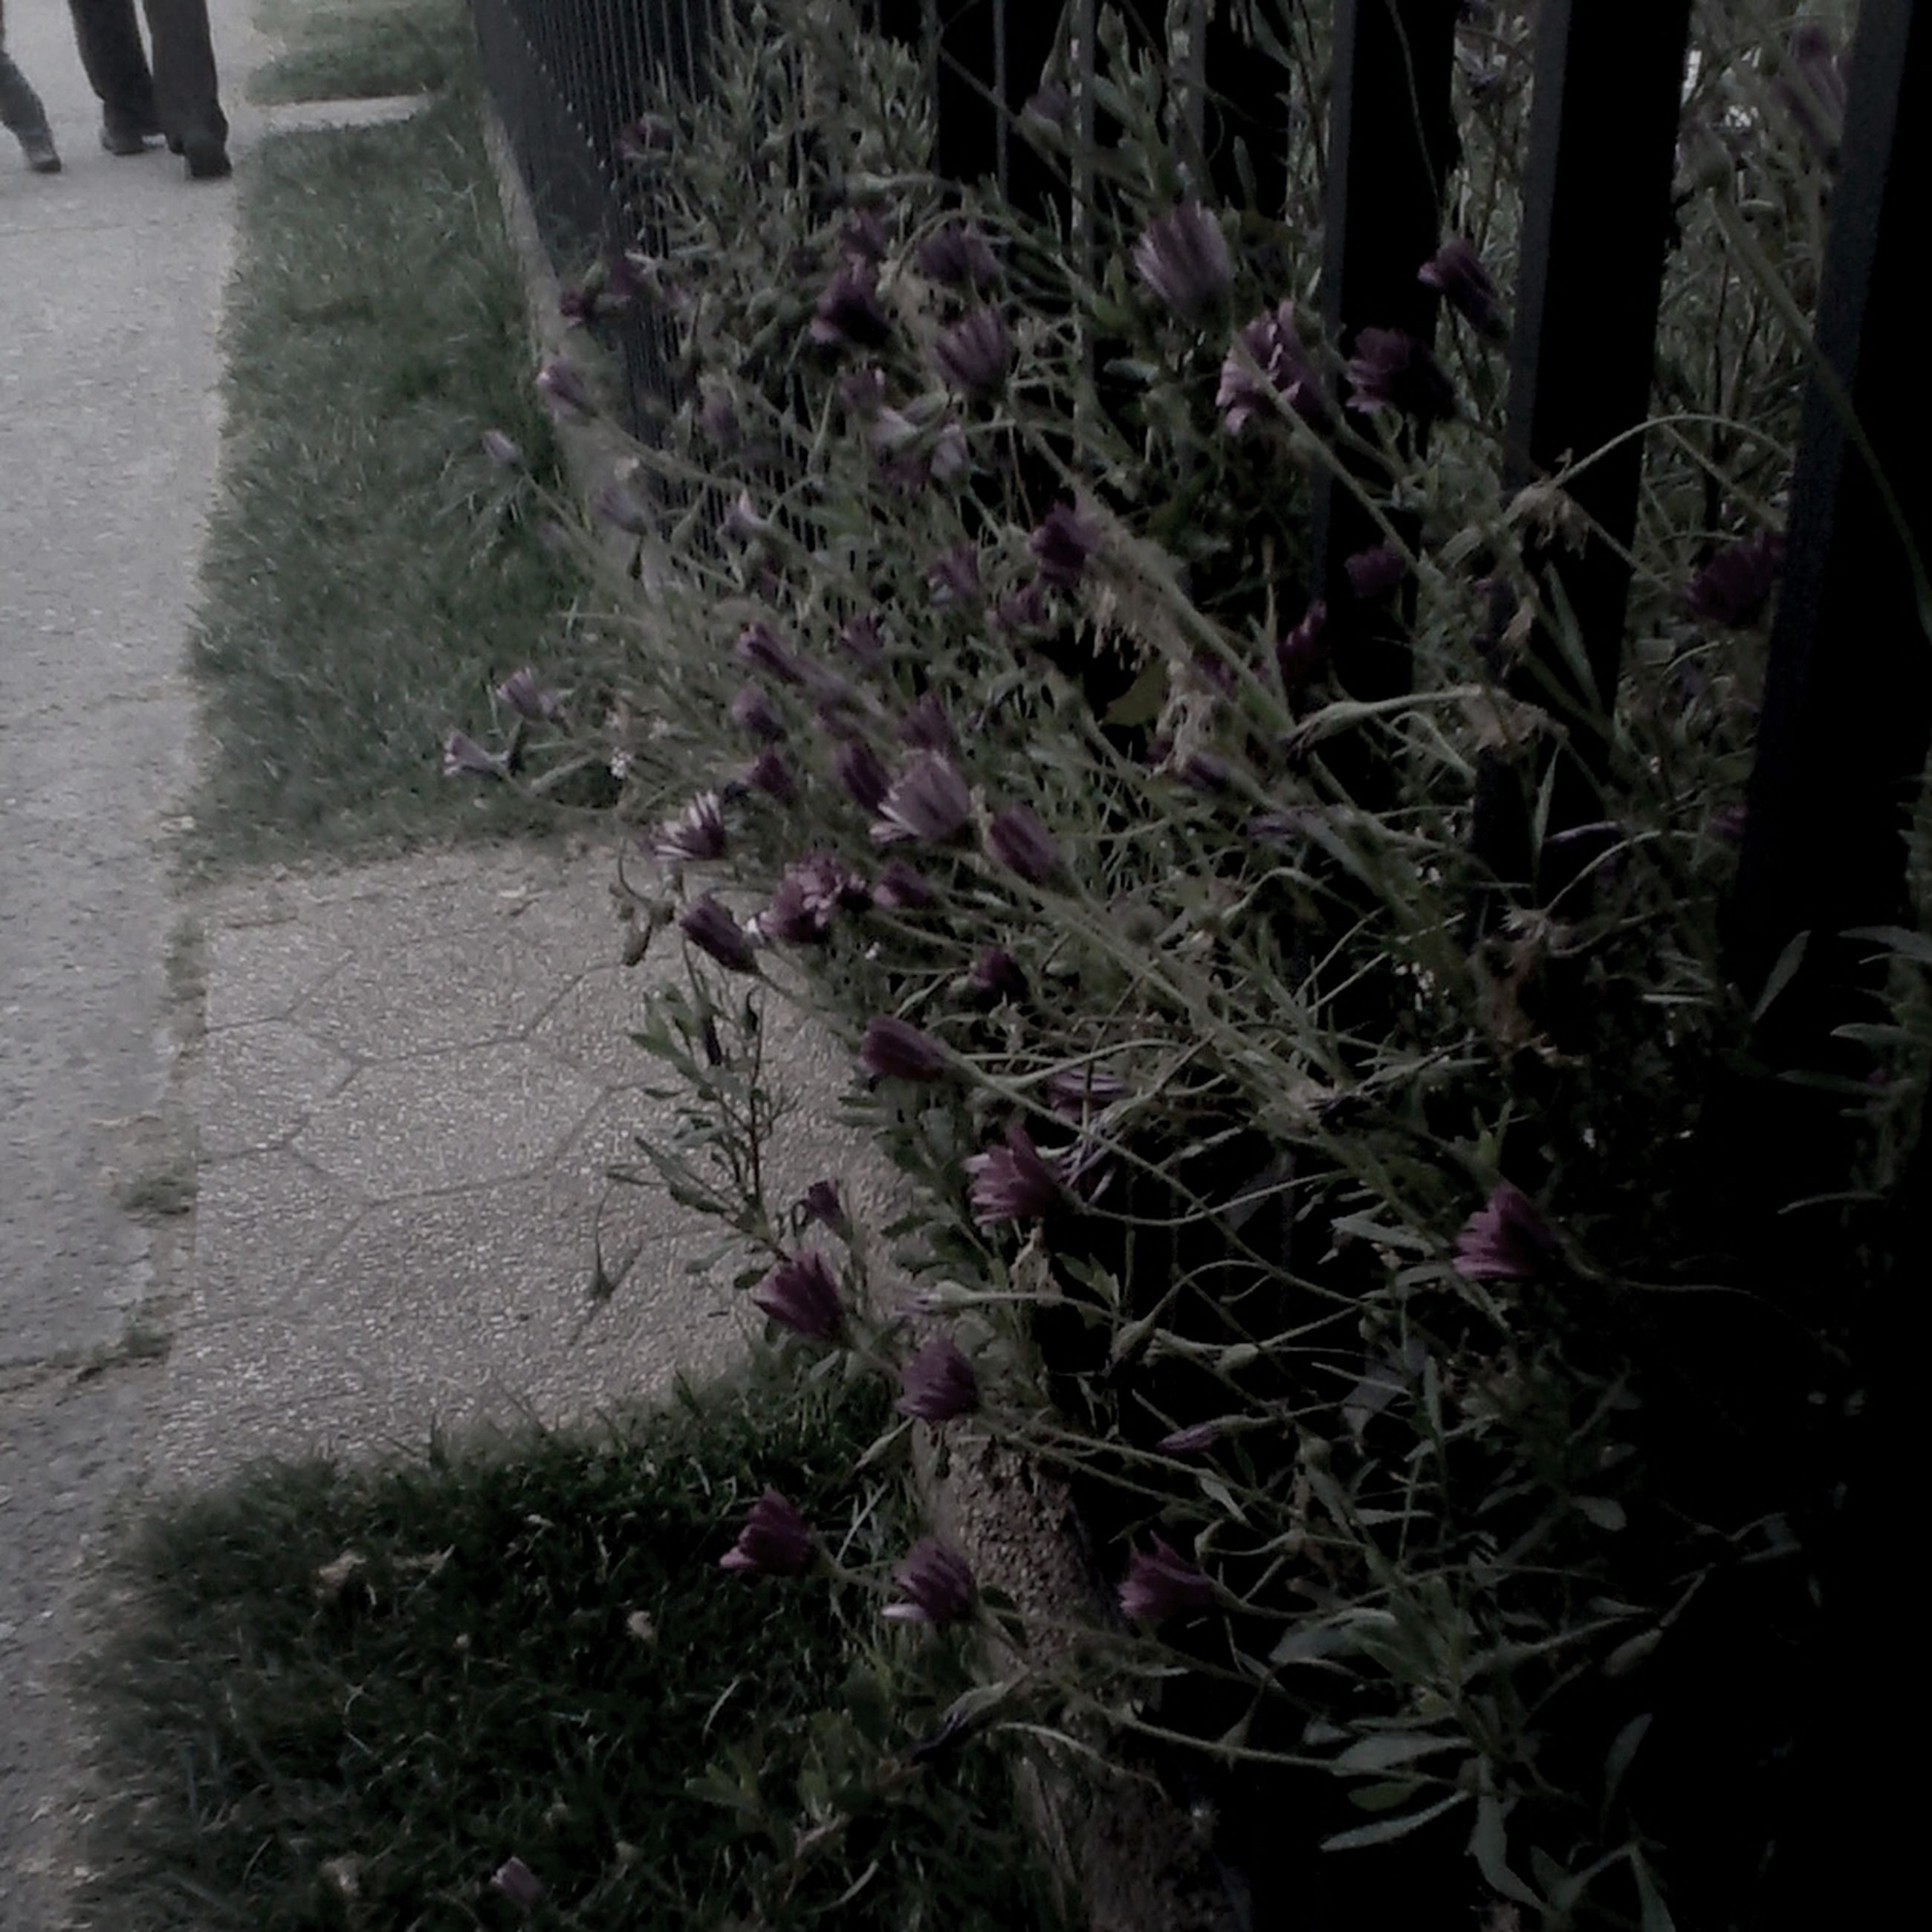 growth, plant, flower, nature, leaf, tree, outdoors, day, no people, sunlight, front or back yard, tree trunk, growing, high angle view, shadow, built structure, grass, branch, footpath, fence